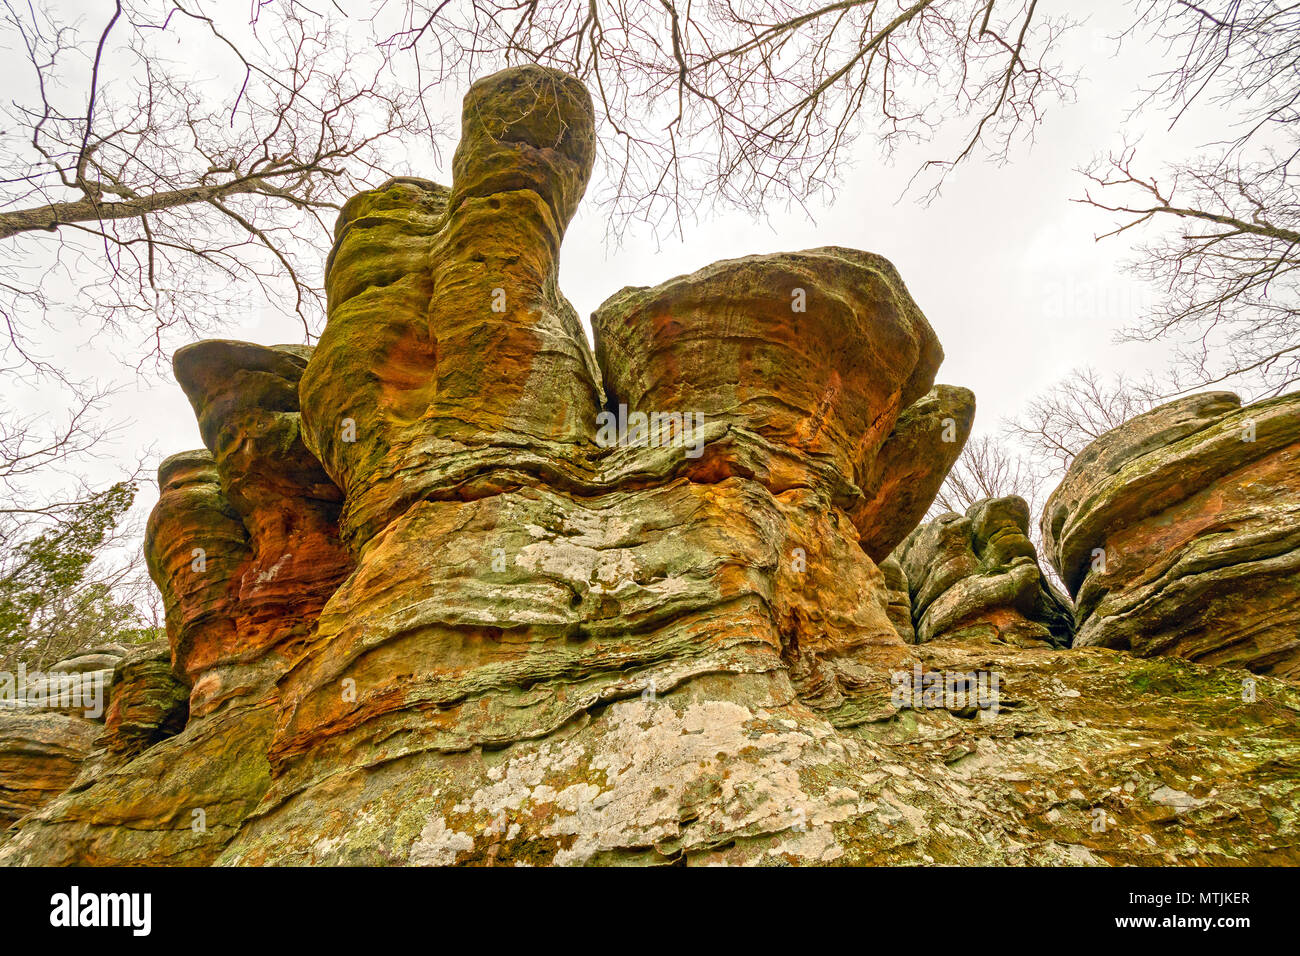 Colorful Anvil Rock in the Wilds of Garden of the Gods in Shawnee National Forest in Illinois - Stock Image